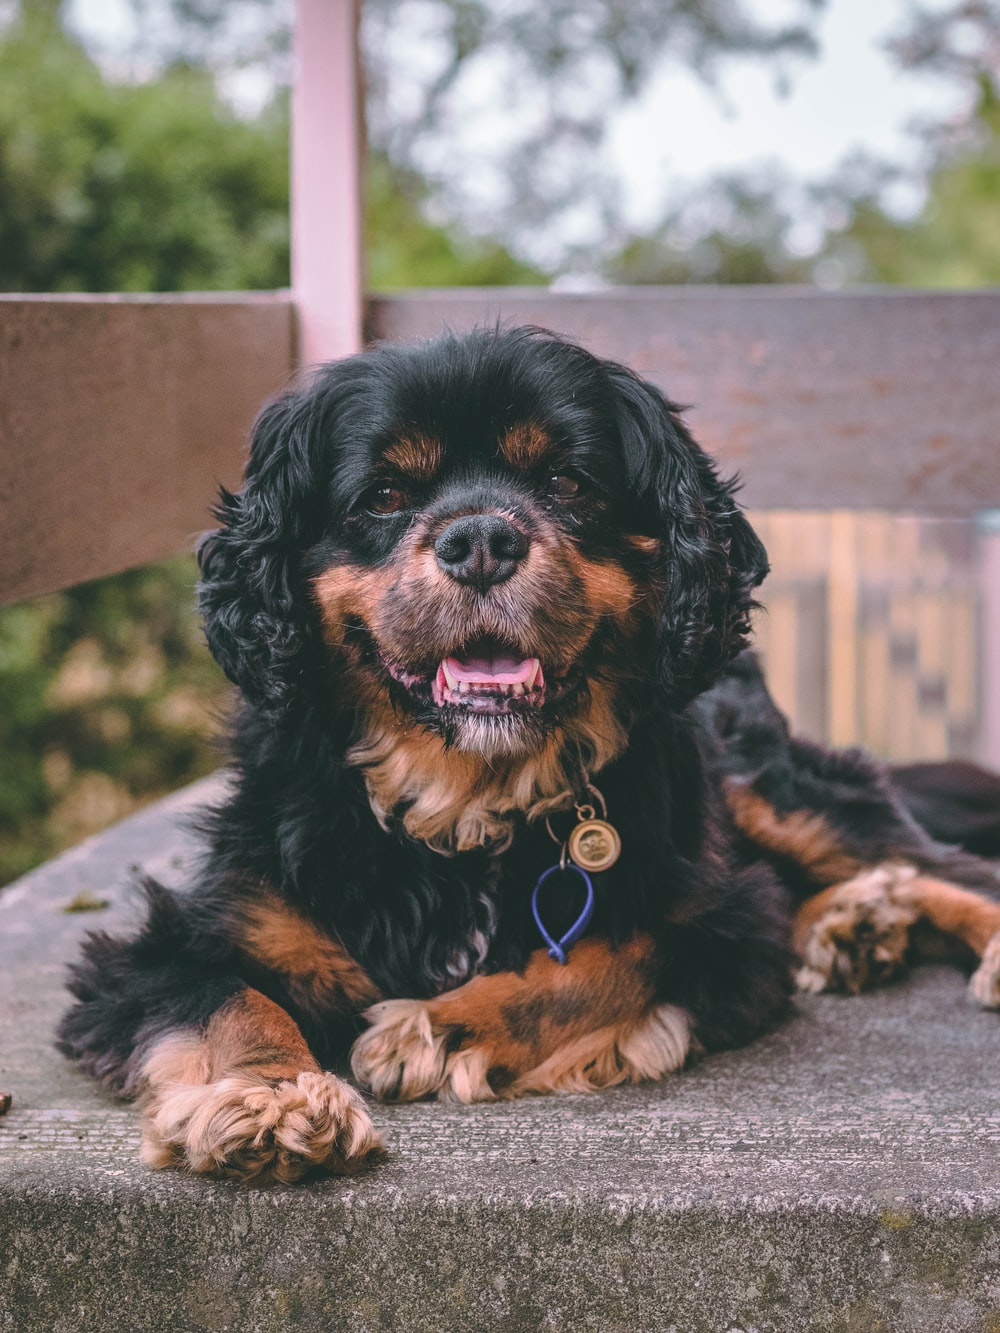 adult black and tan Cavalier King Charles spaniel lying on gray surface close-up photo